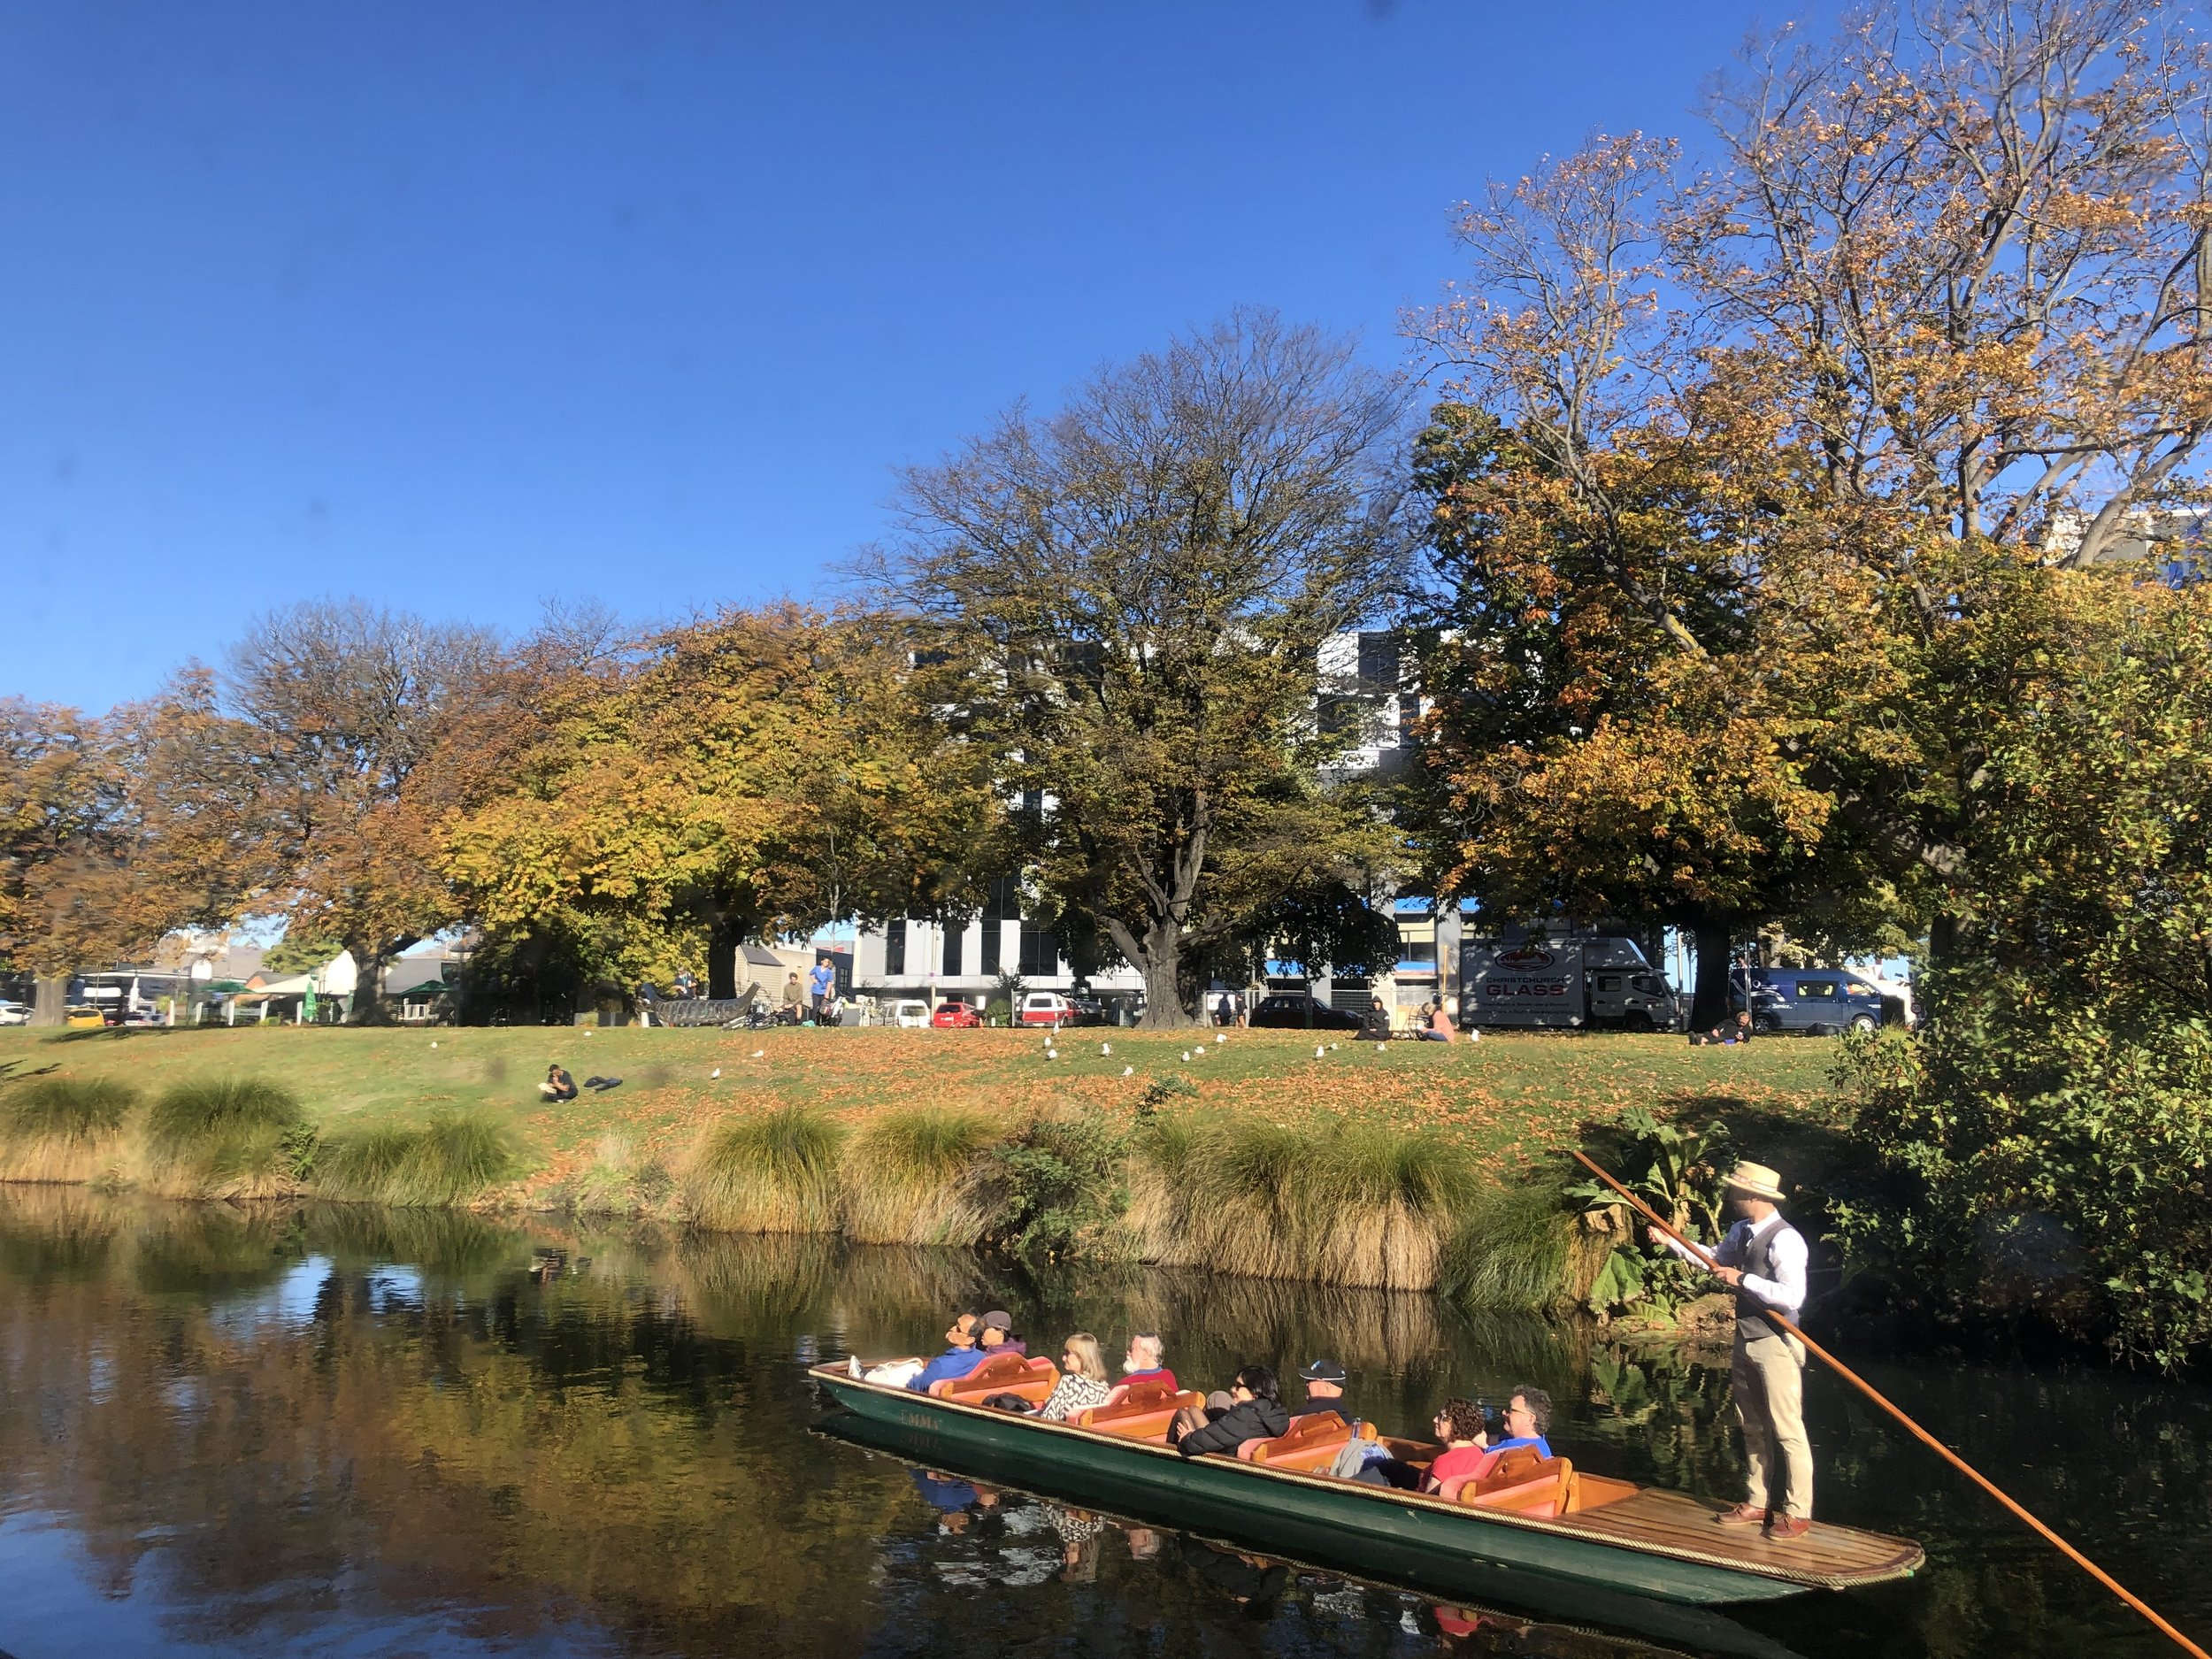 Punting on the river avon in autumn, Christchurch photo by Sunstone